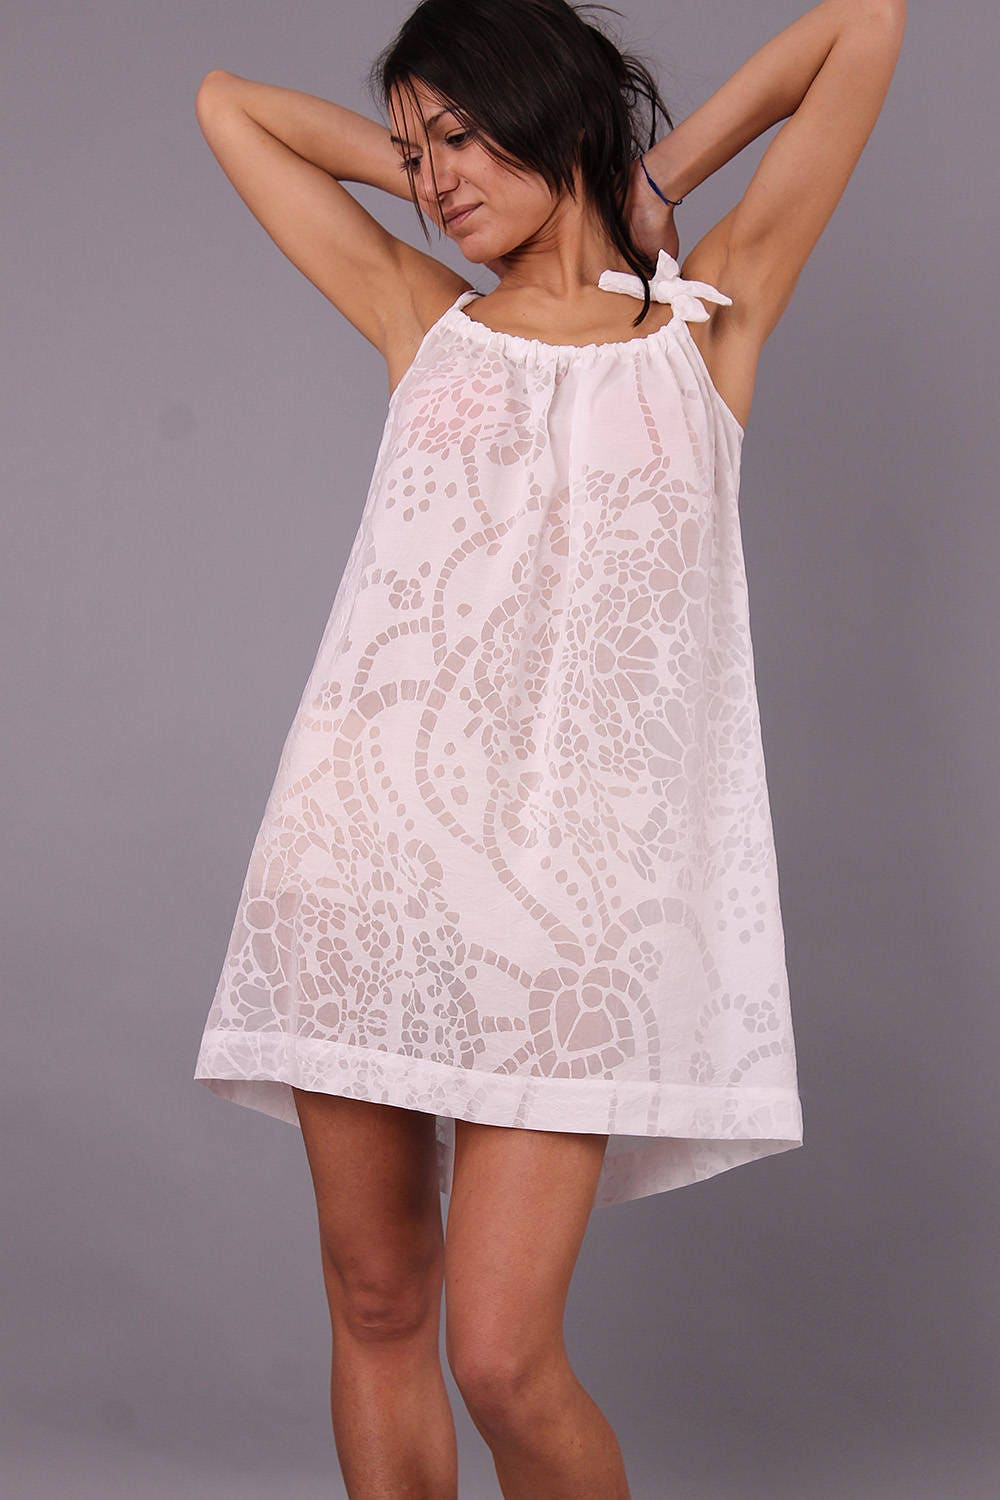 a255e46426 White Nightdress Night gown bed gown sleepwear lounge